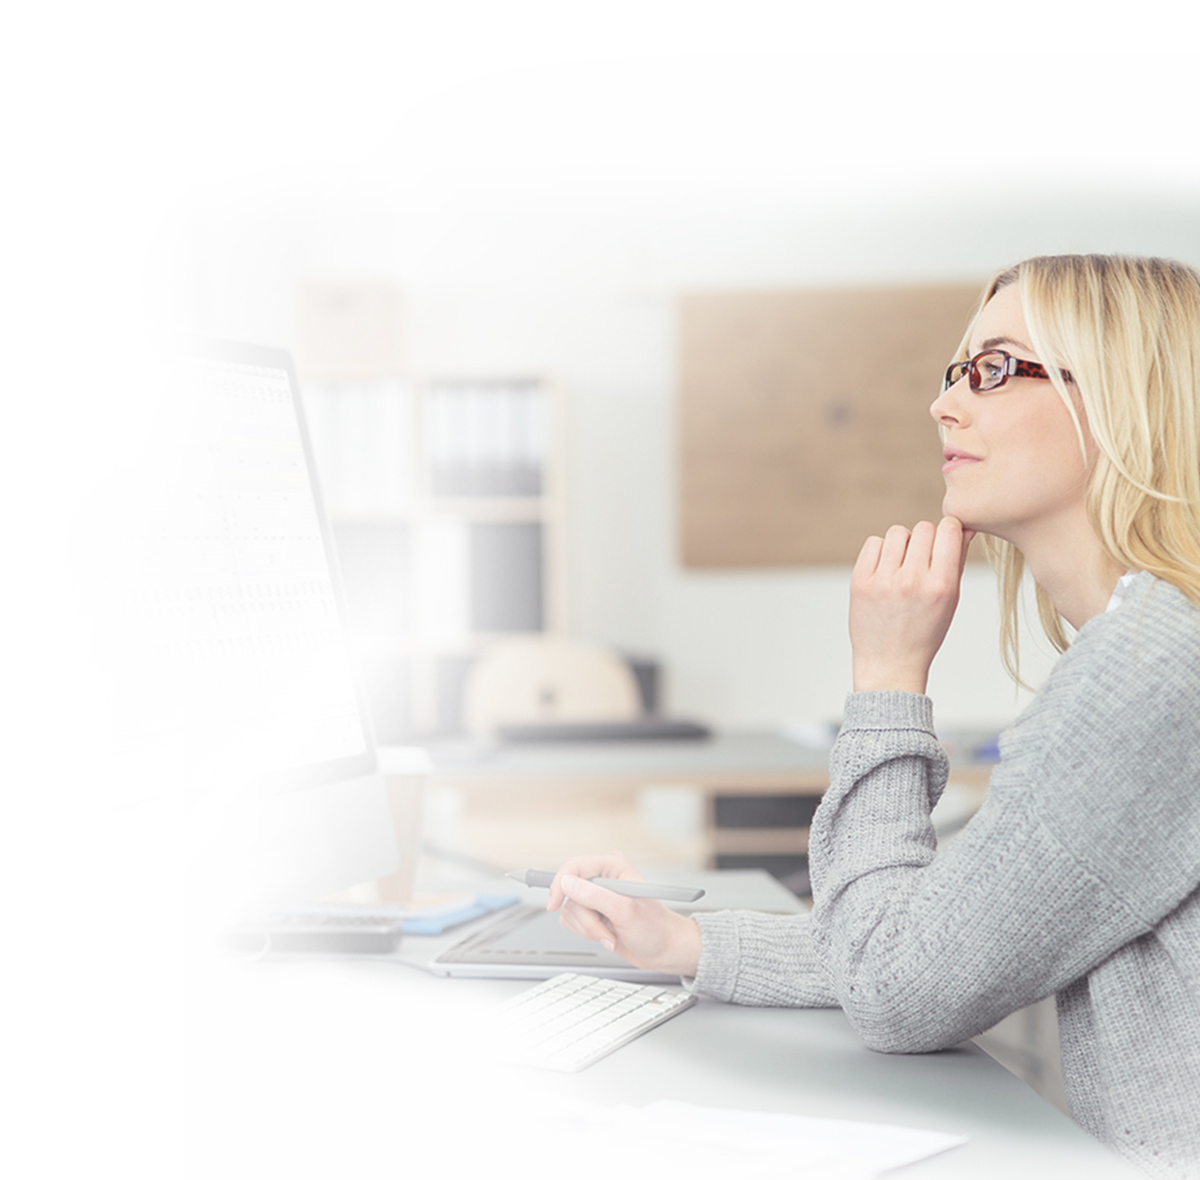 profile of a woman with glasses who is looking at a desktop